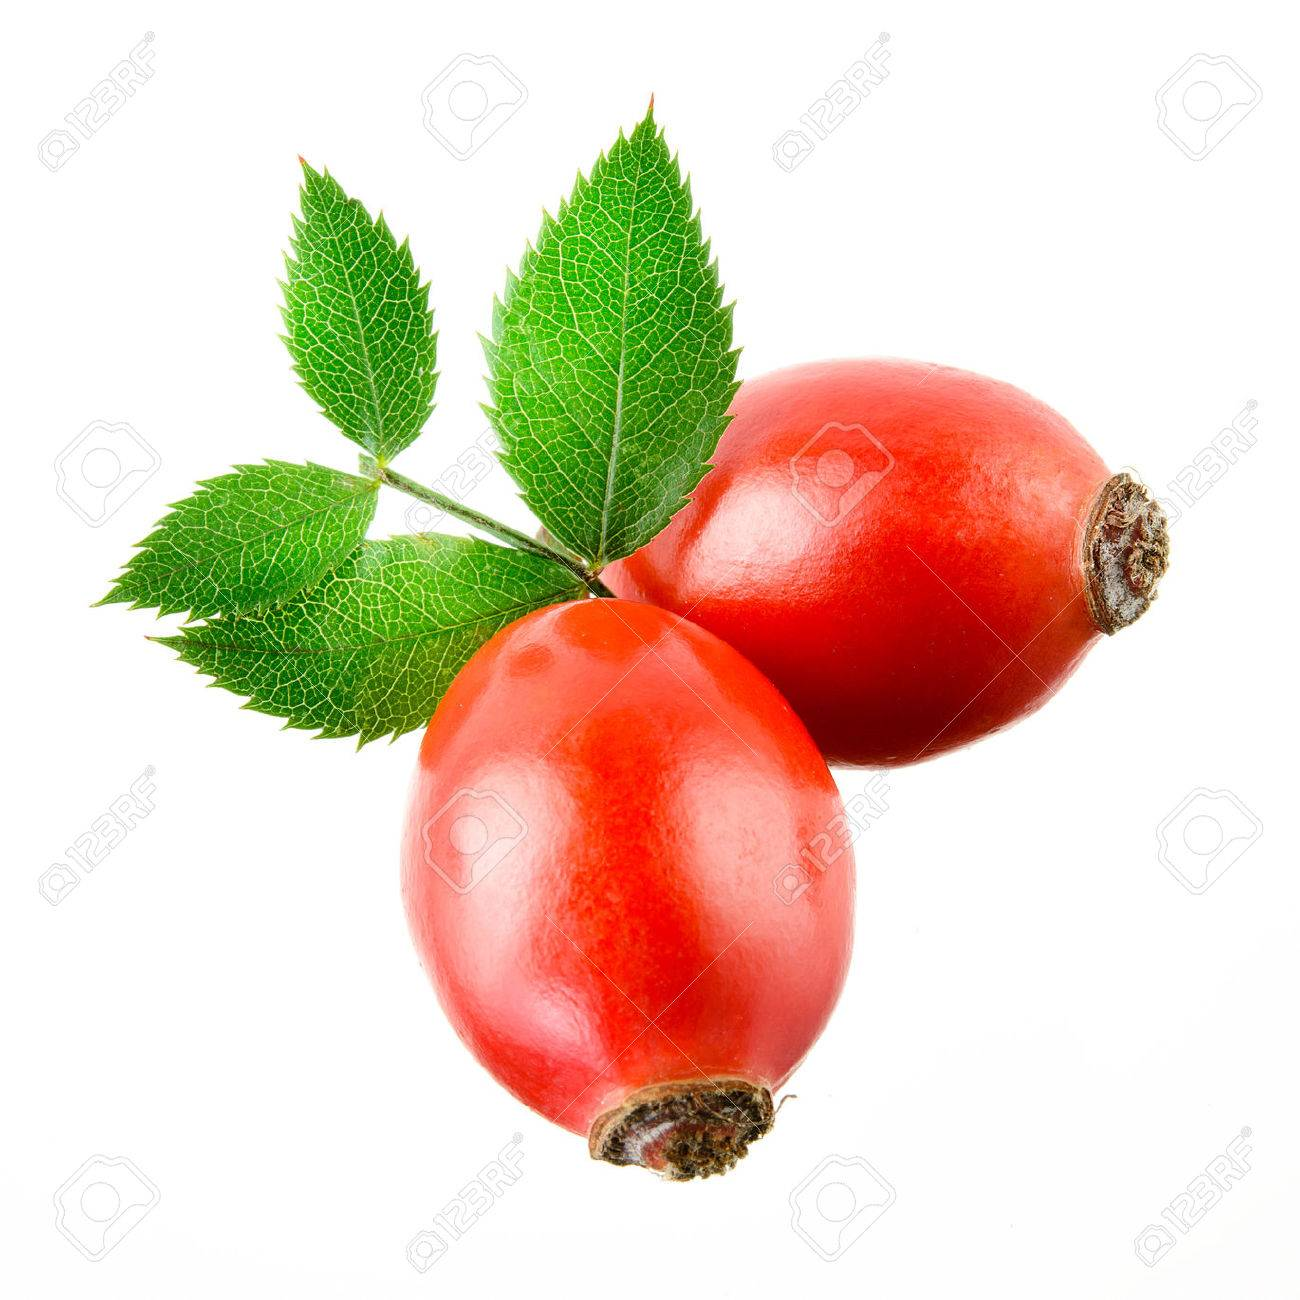 Rose hip isolated on a white background. - 25402874